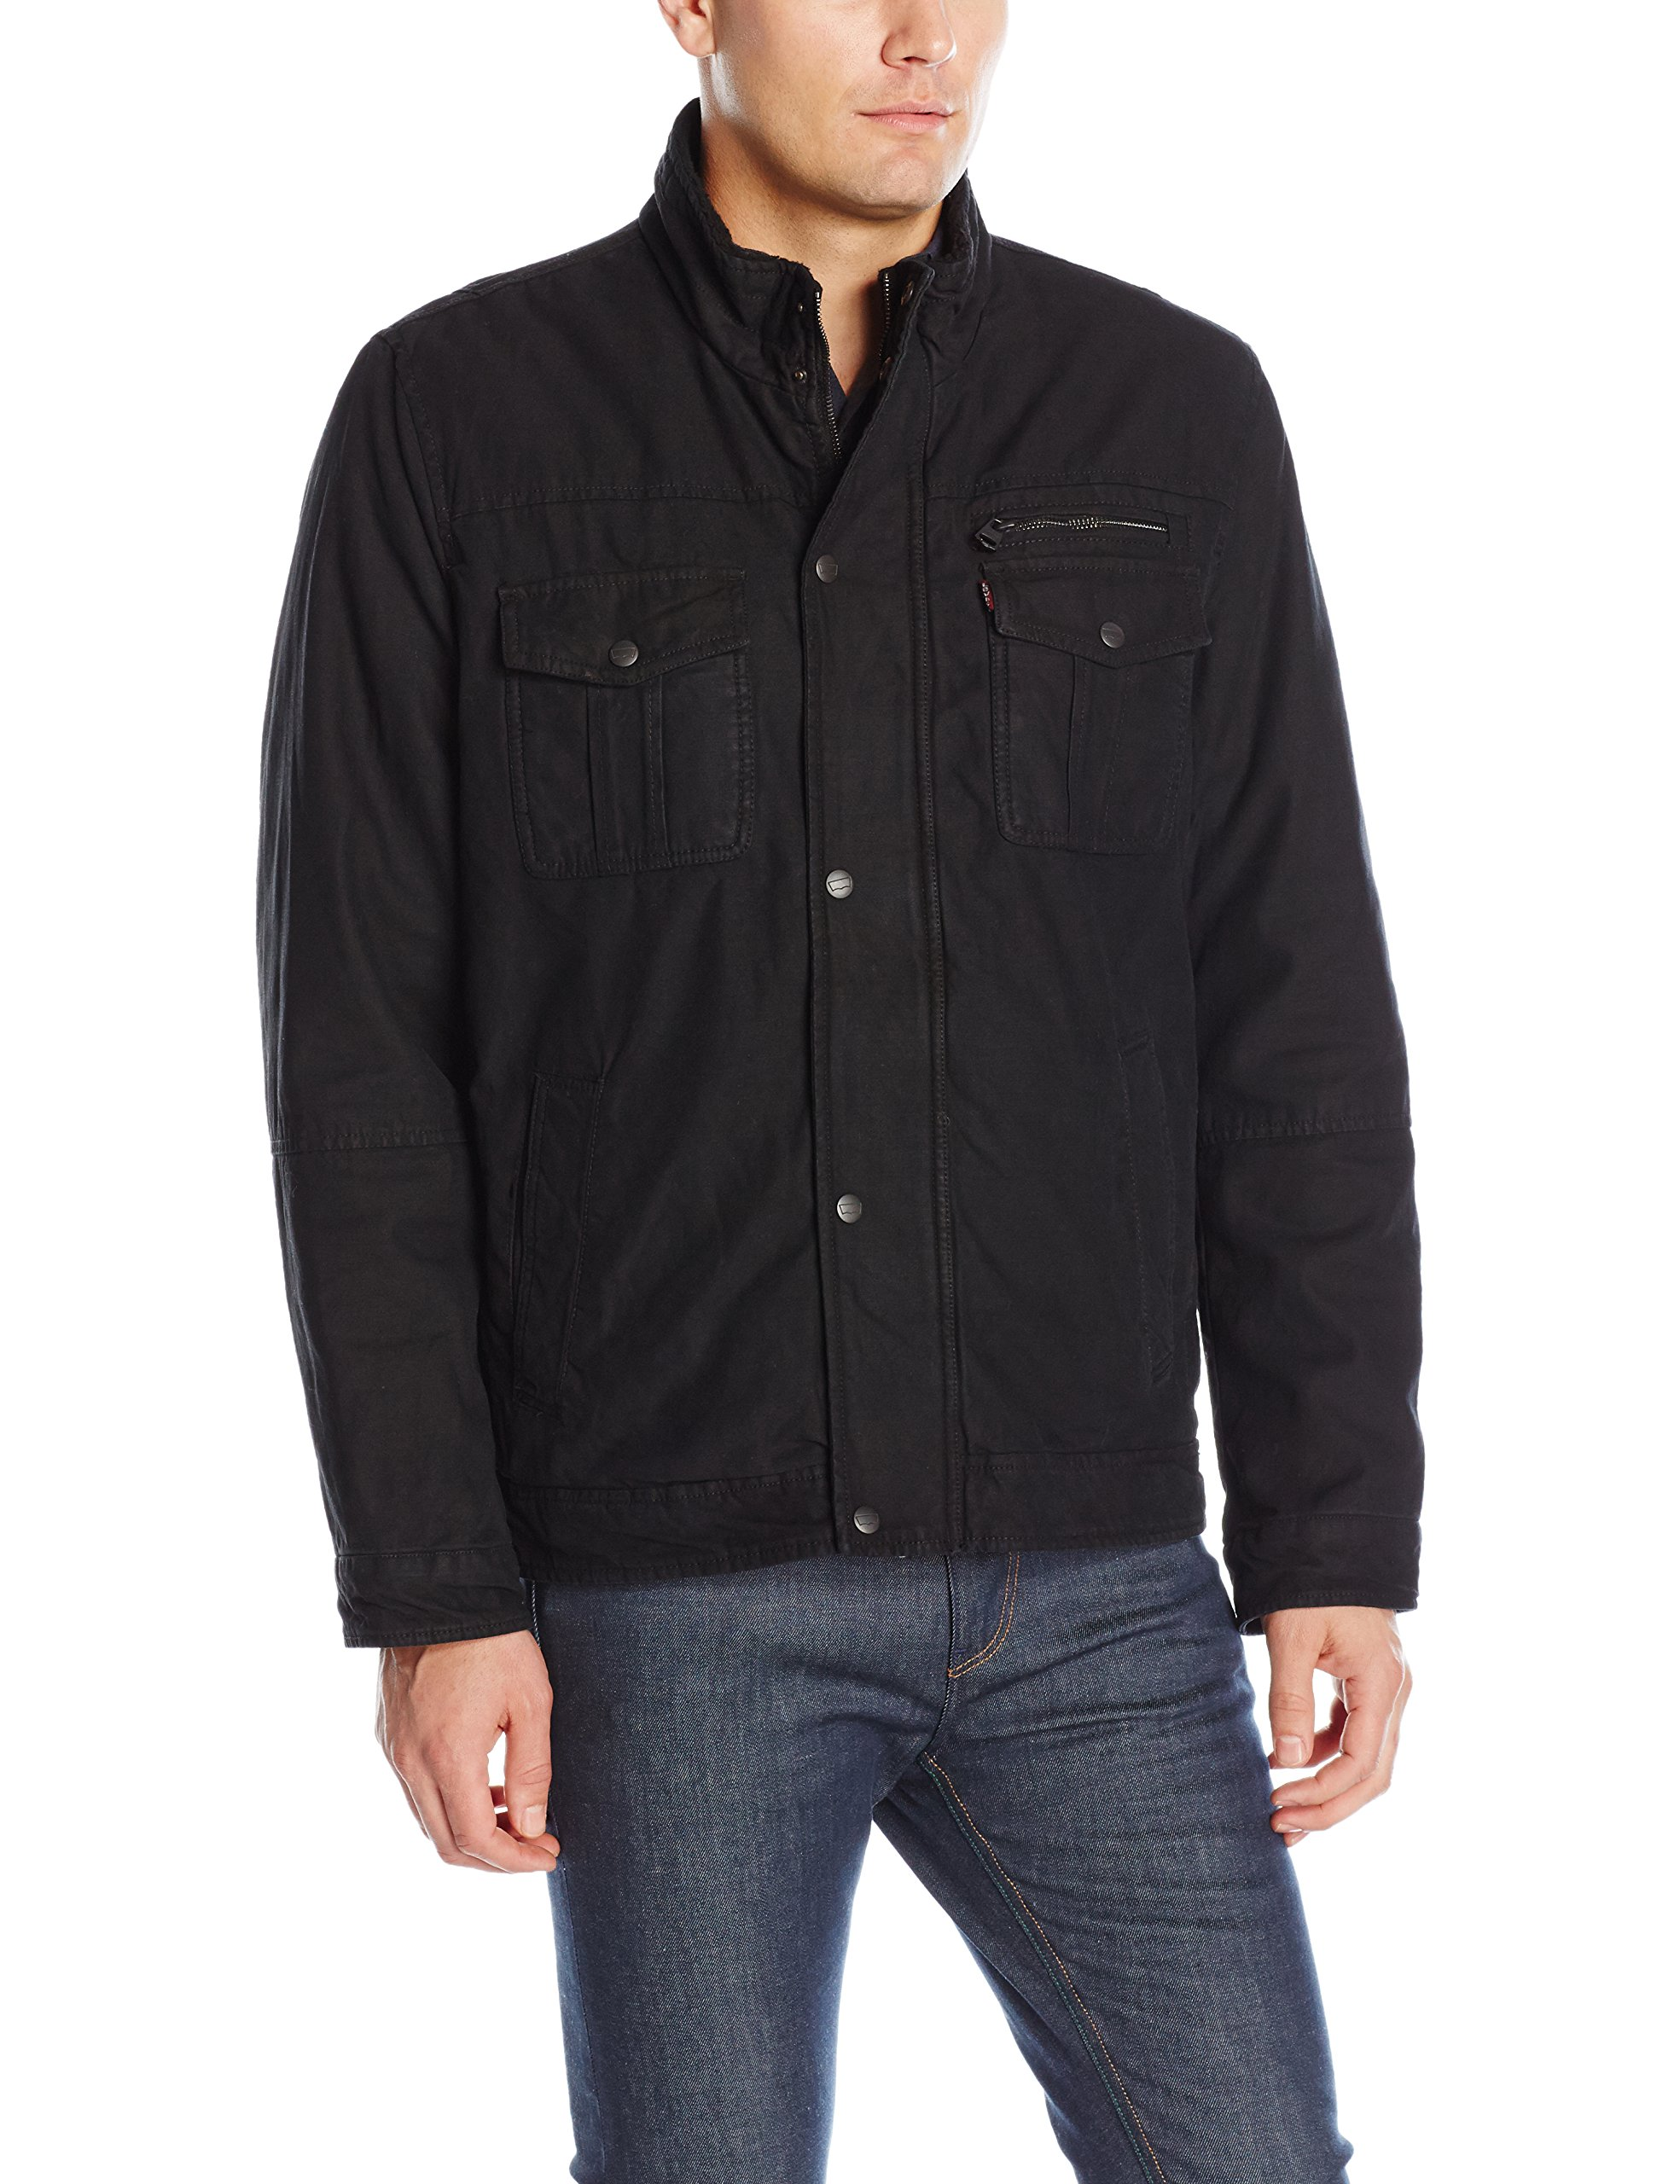 Levi's Men's Washed Cotton Two Pocket Sherpa Lined Trucker Jacket, Black, M by Levi's